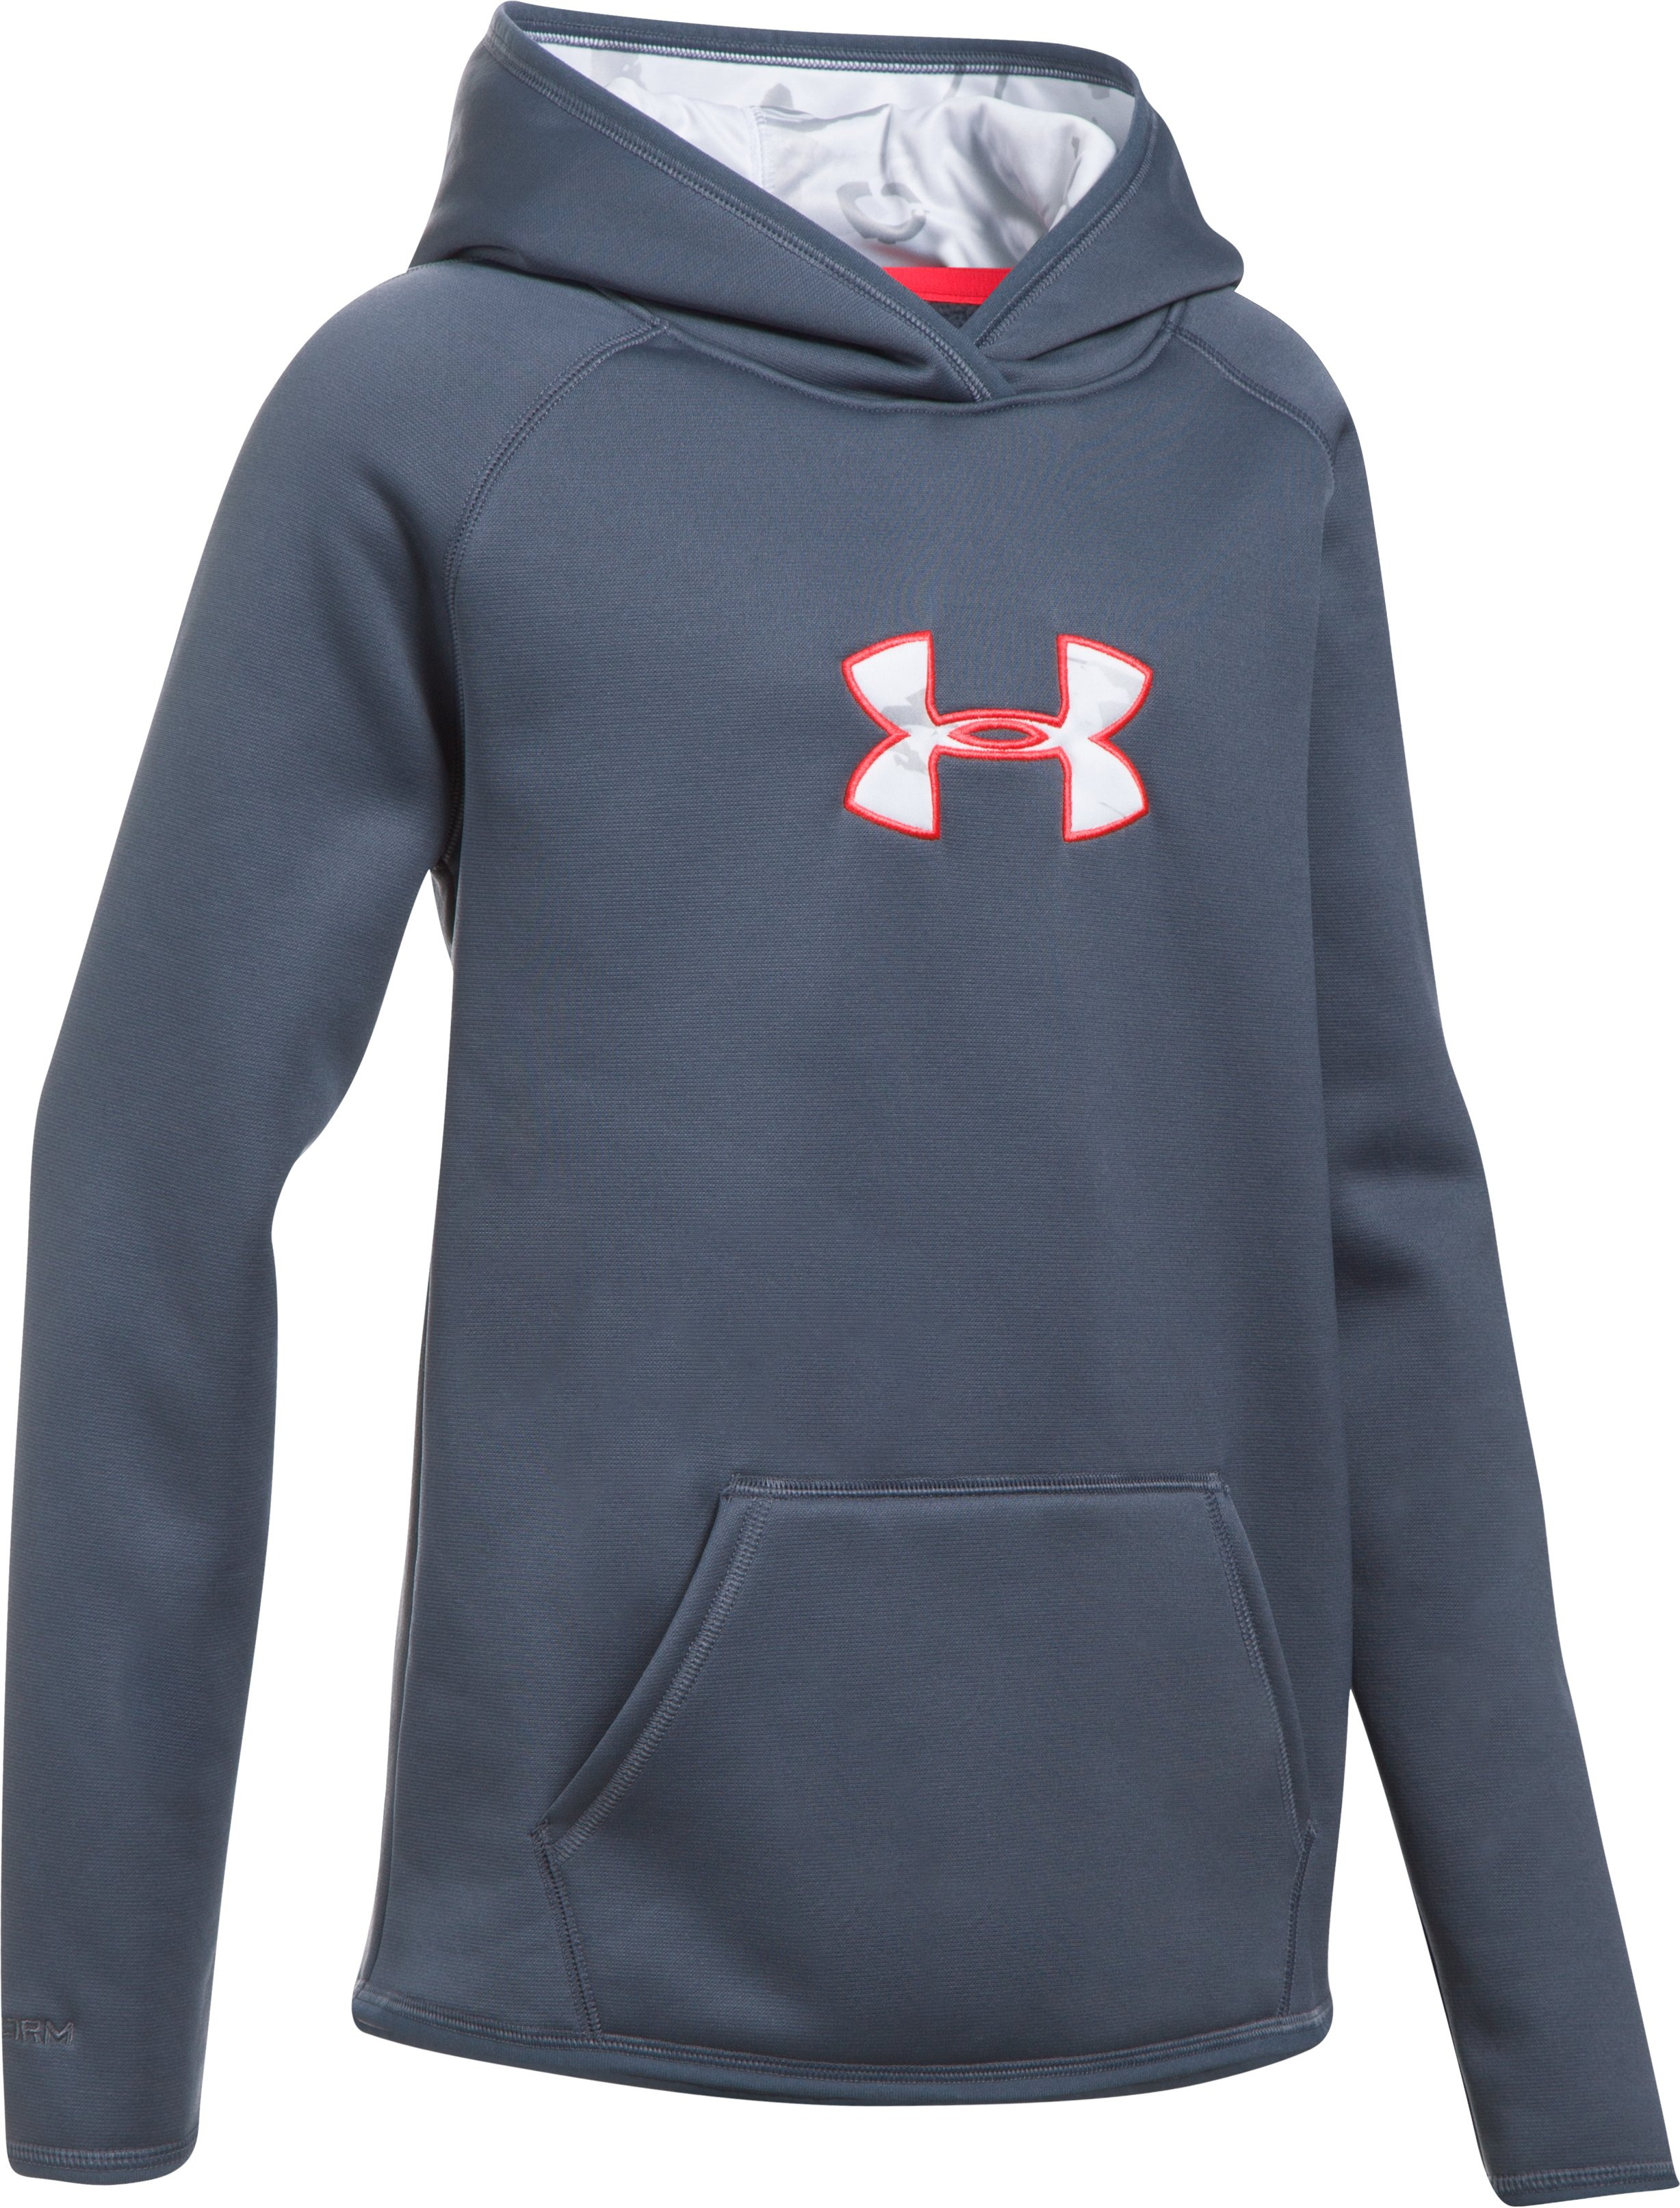 Girls' UA Storm Caliber Hoodie, APOLLO GRAY, undefined